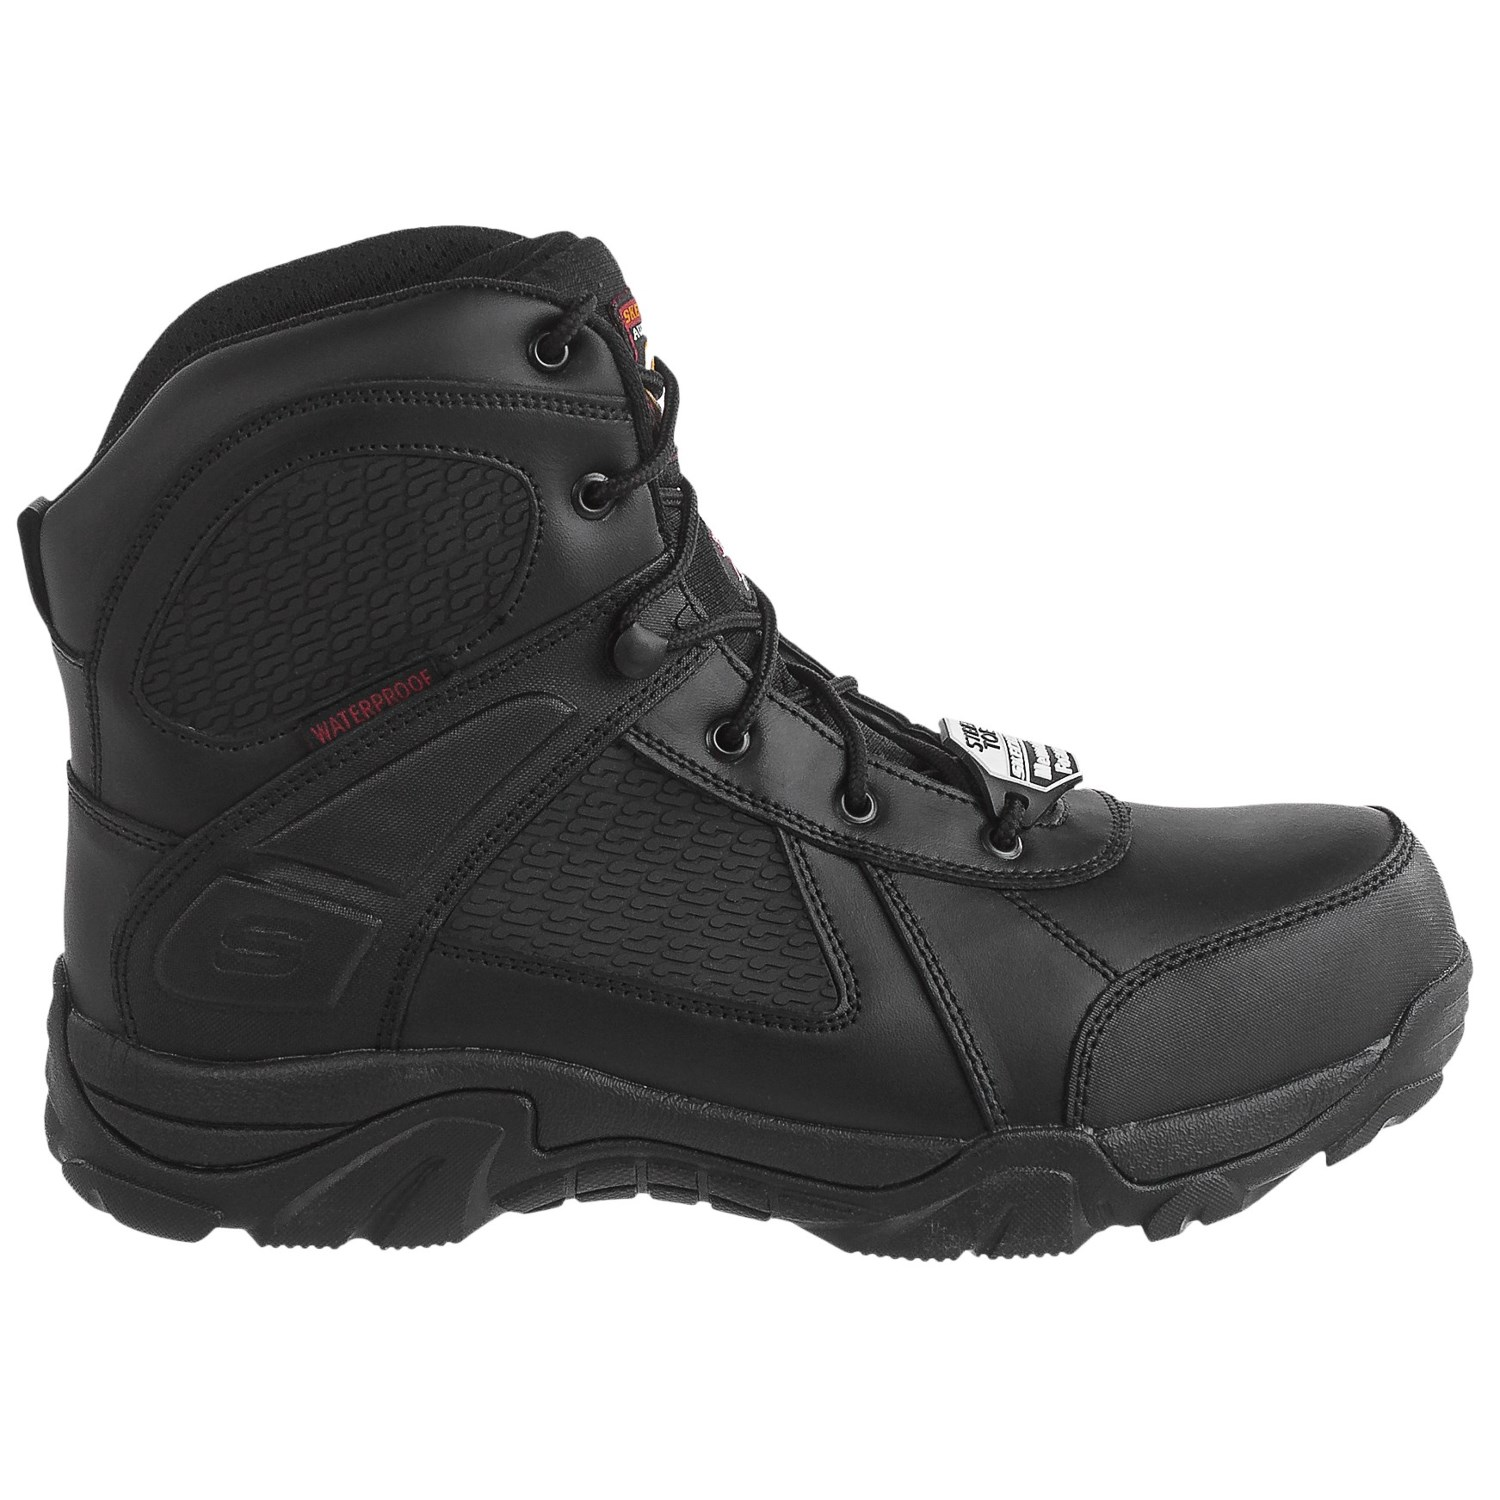 Skechers Relaxed Fit Grahn Steel Toe Work Boots (For Men) - Save 60%